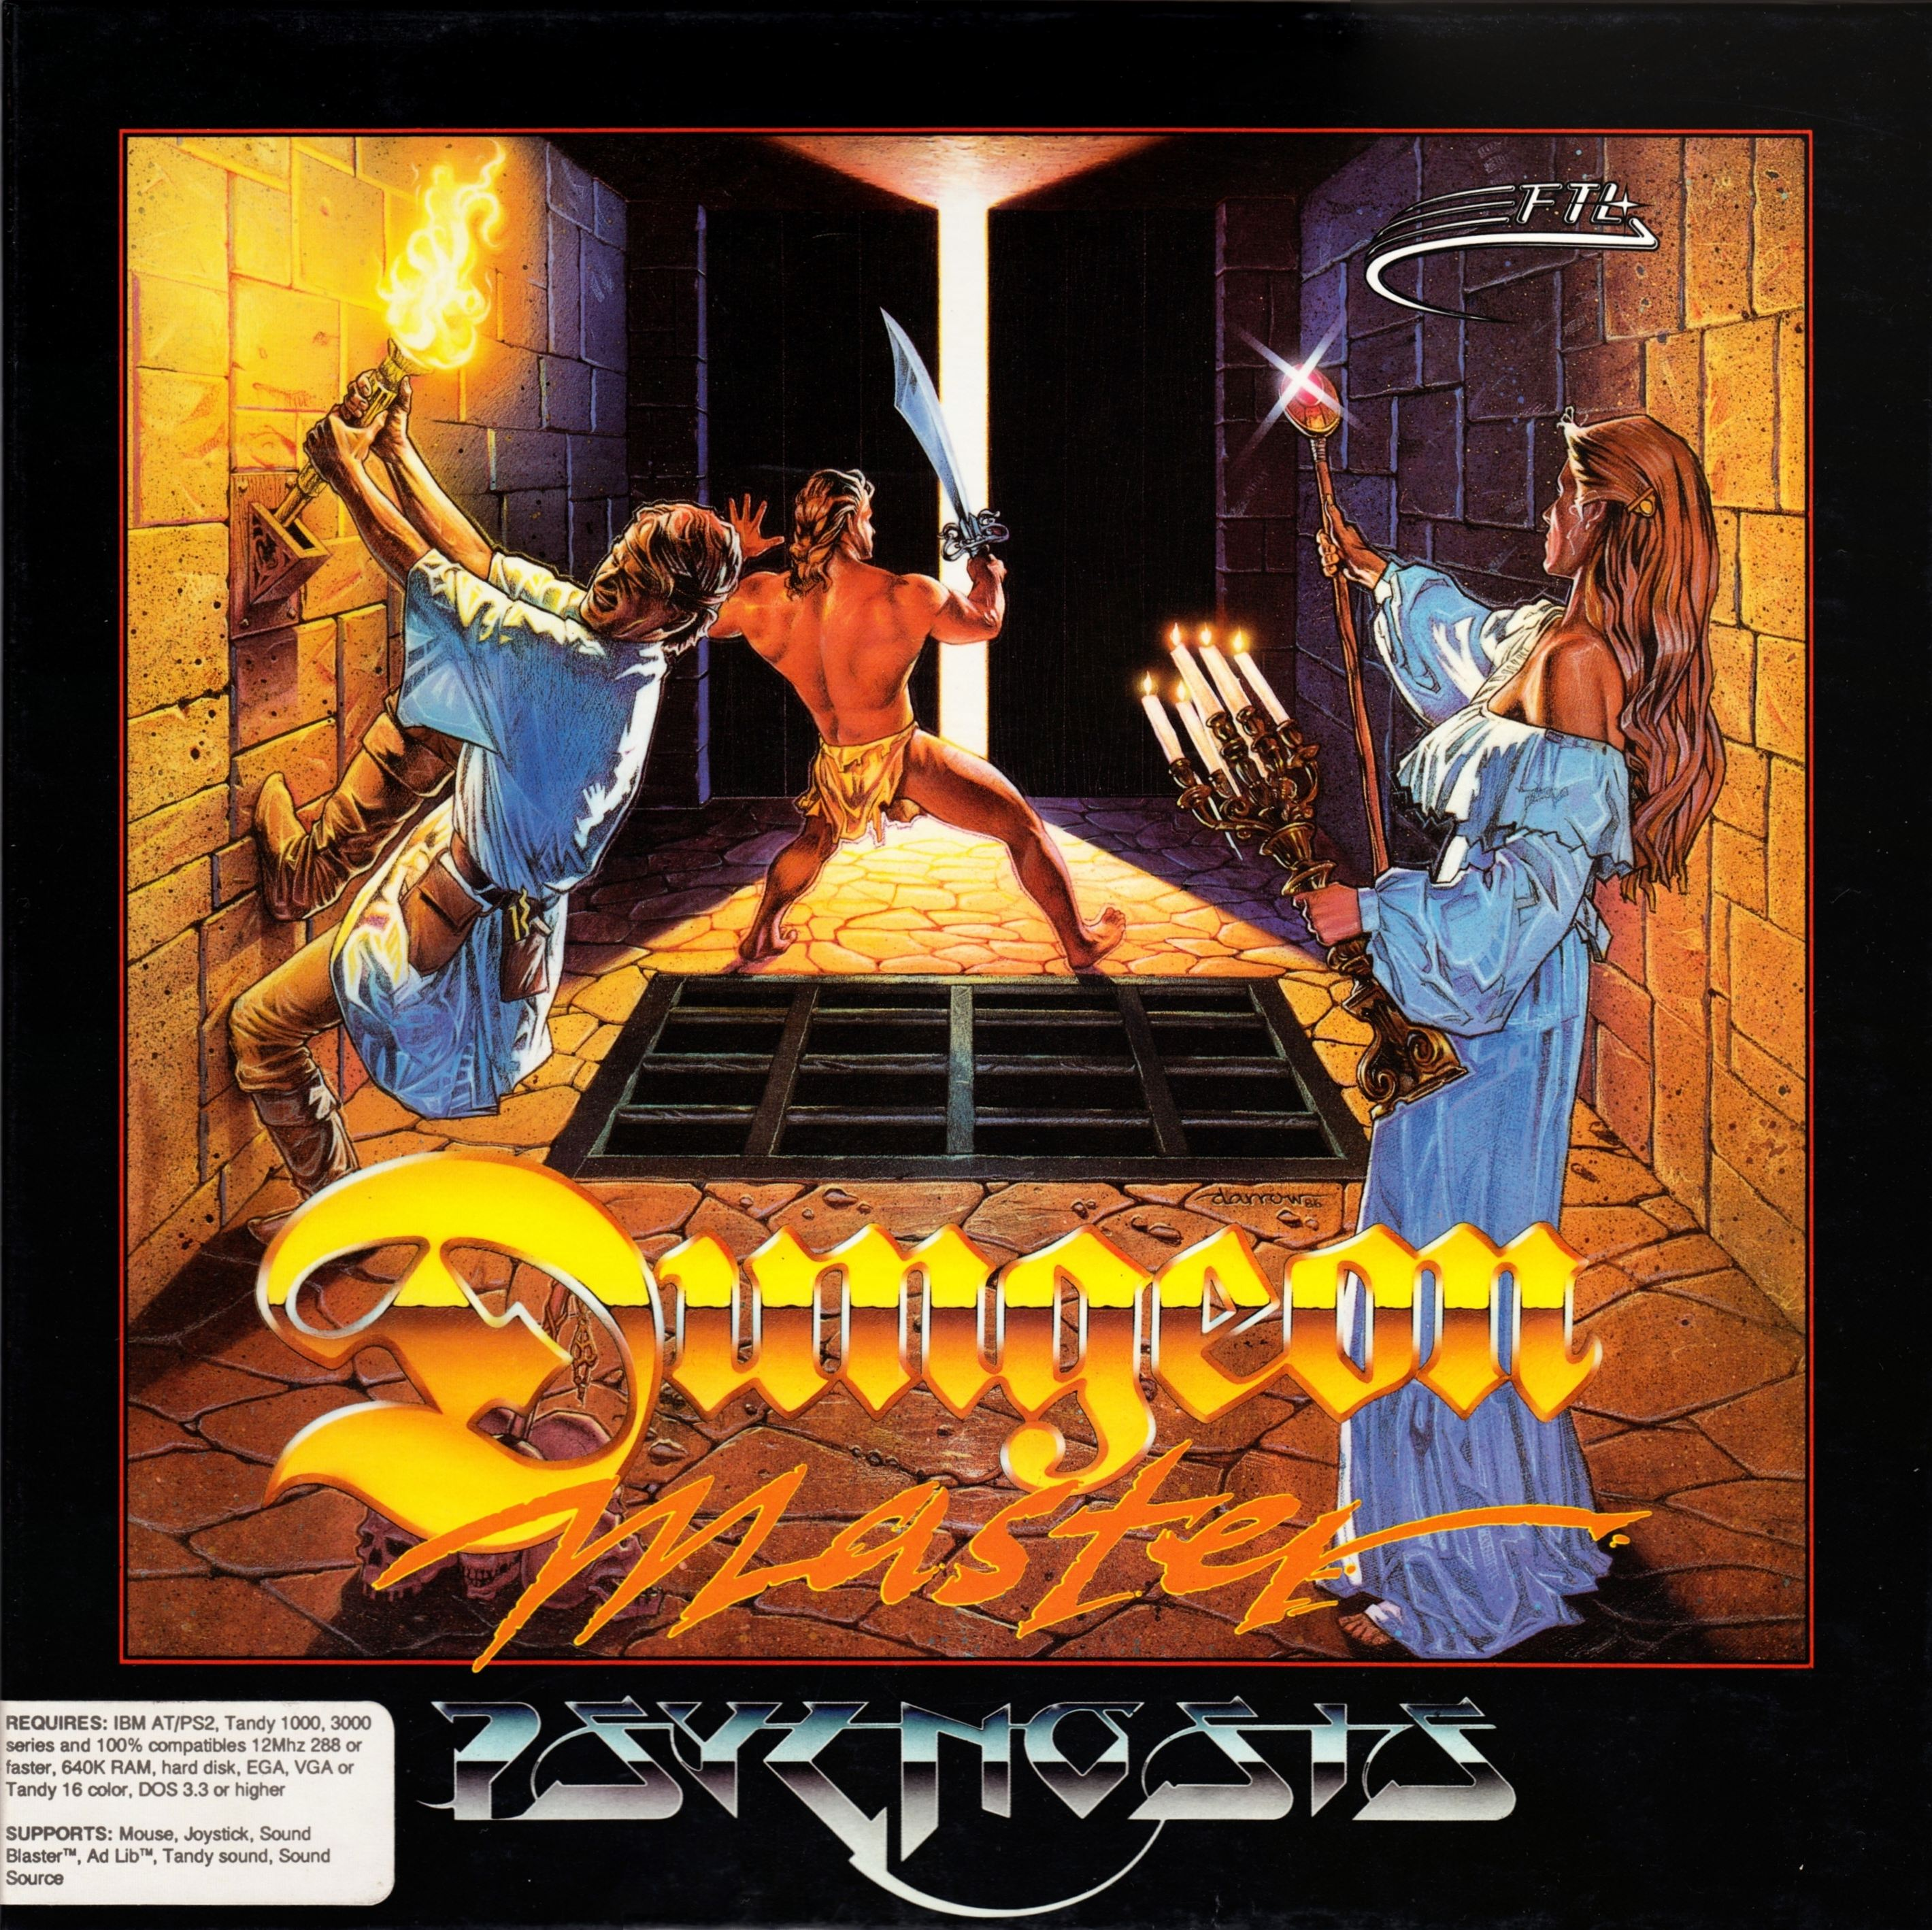 Game - Dungeon Master - DE - PC - Psygnosis - Box - Front - Scan